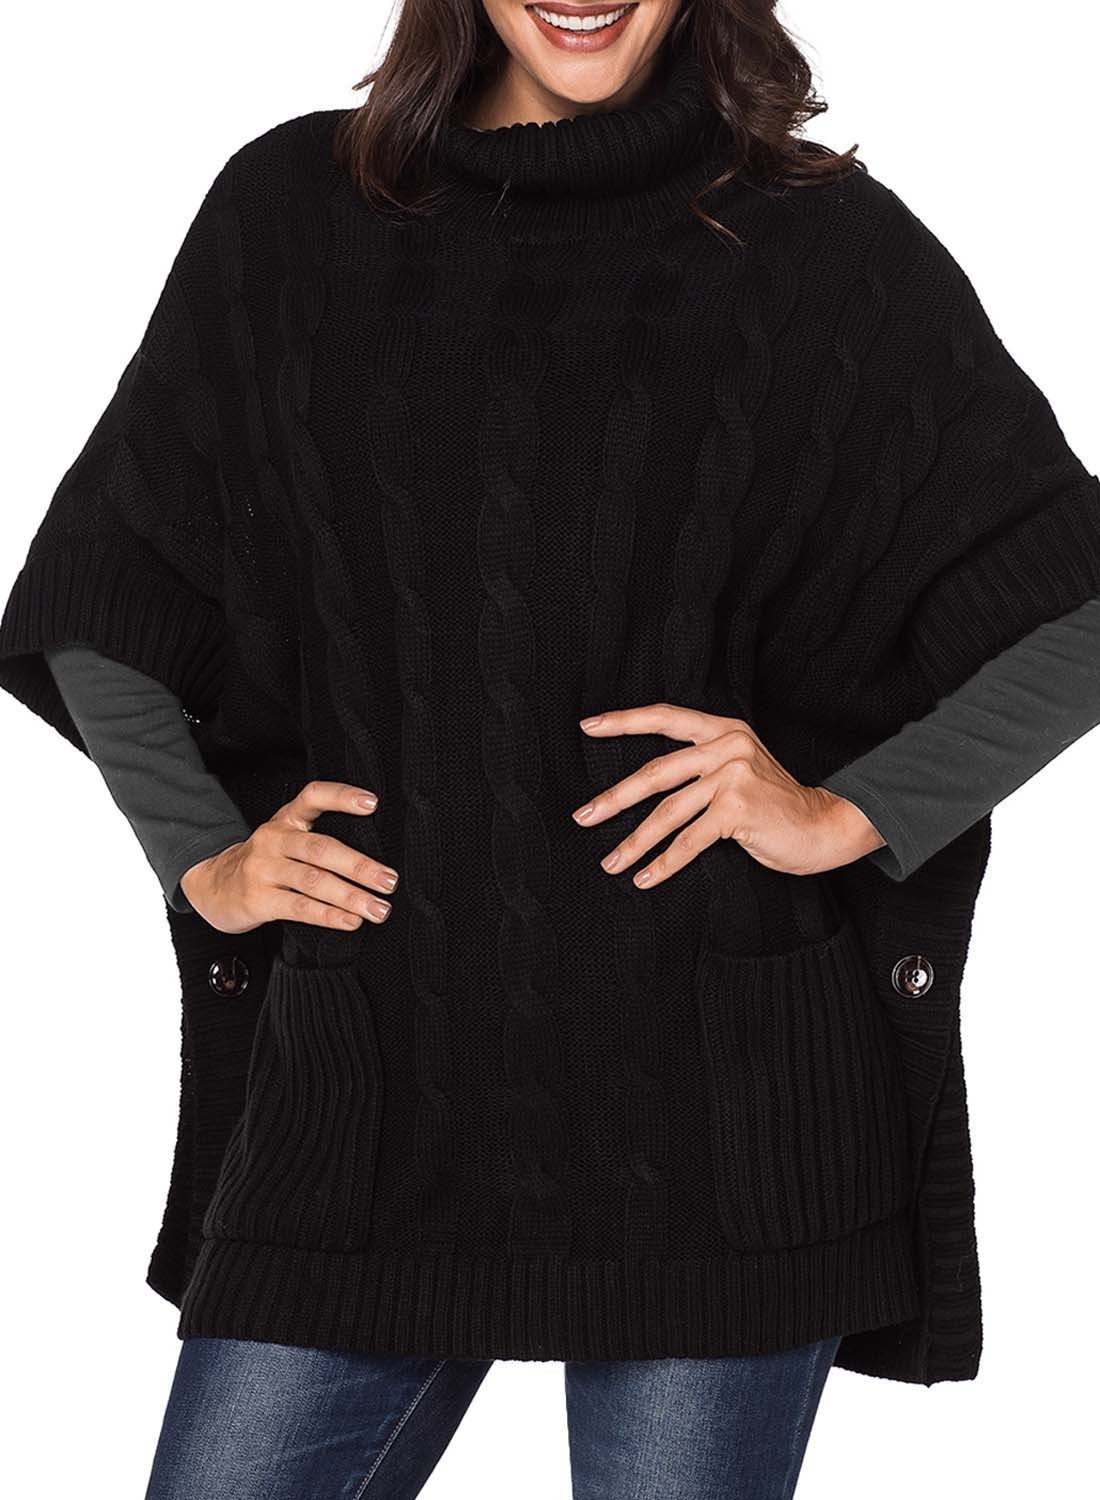 Elapsy Womens Ladies Knit Turtleneck Batwing Sleeve Casual Warm Pockets Style Tunic Poncho Pullover Sweater Oversize Black by Elapsy (Image #4)